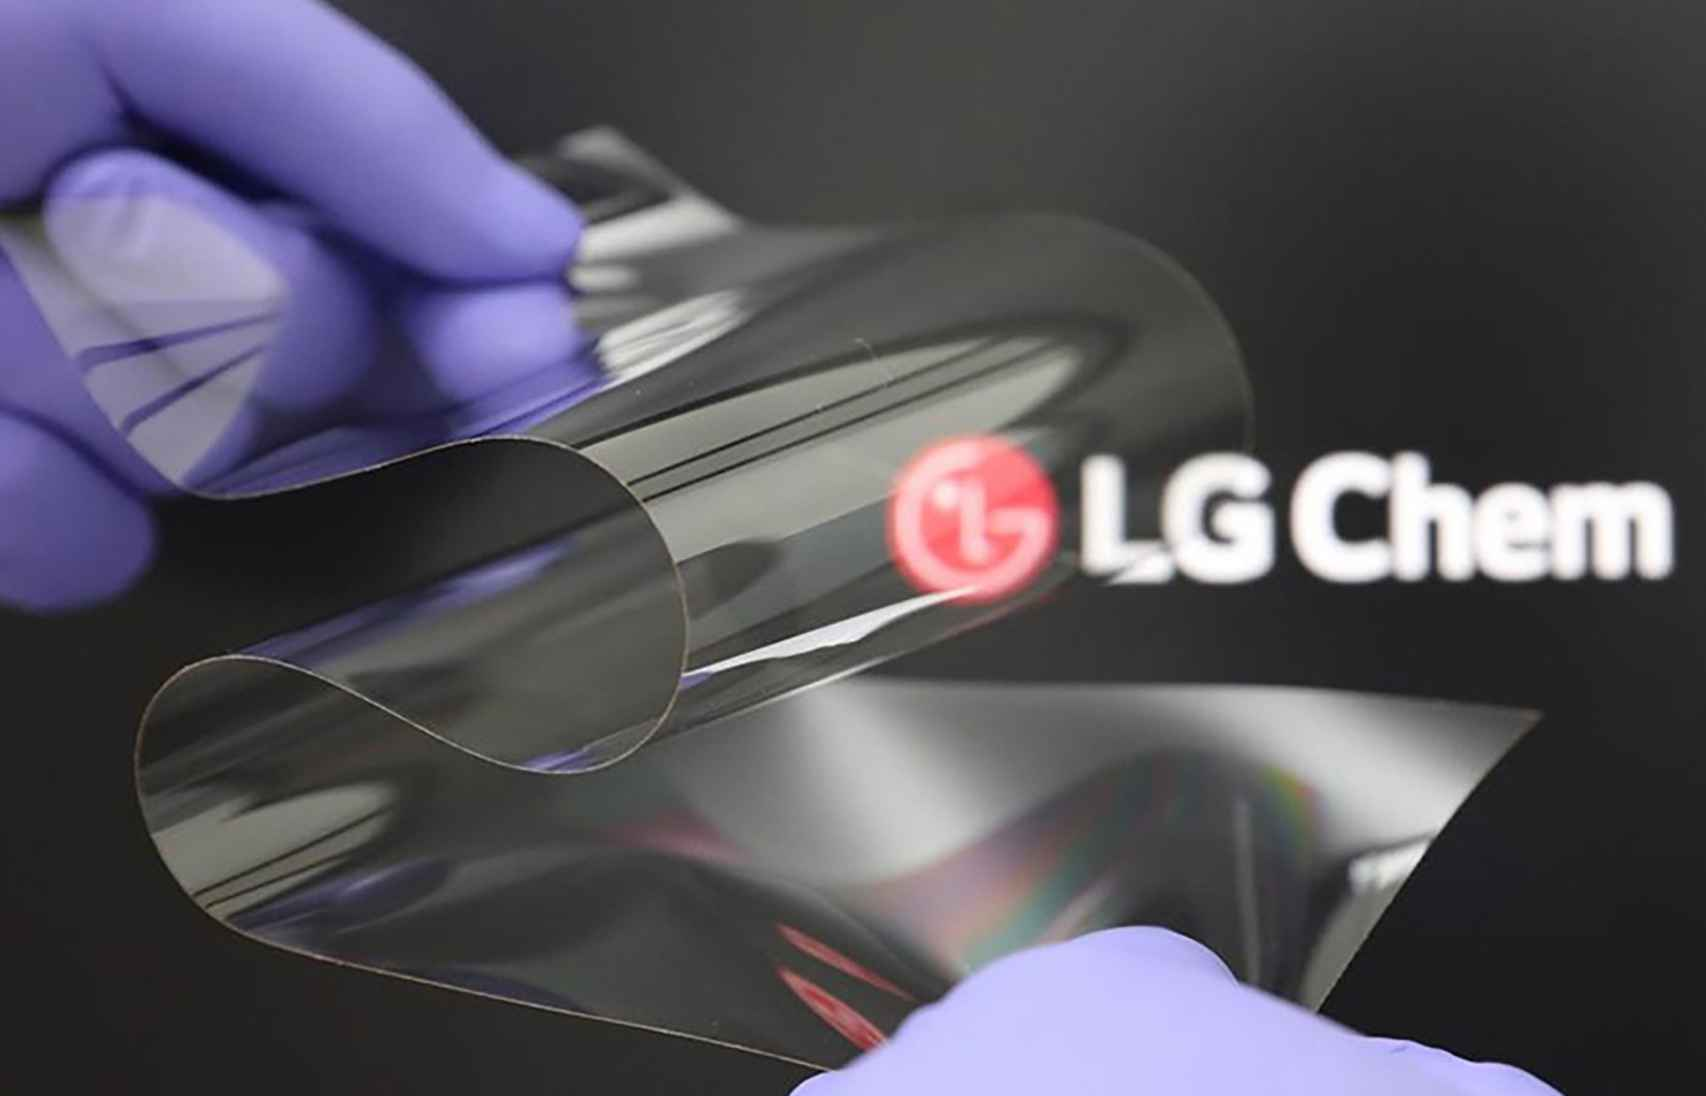 LG Chem and its new flexible protective film